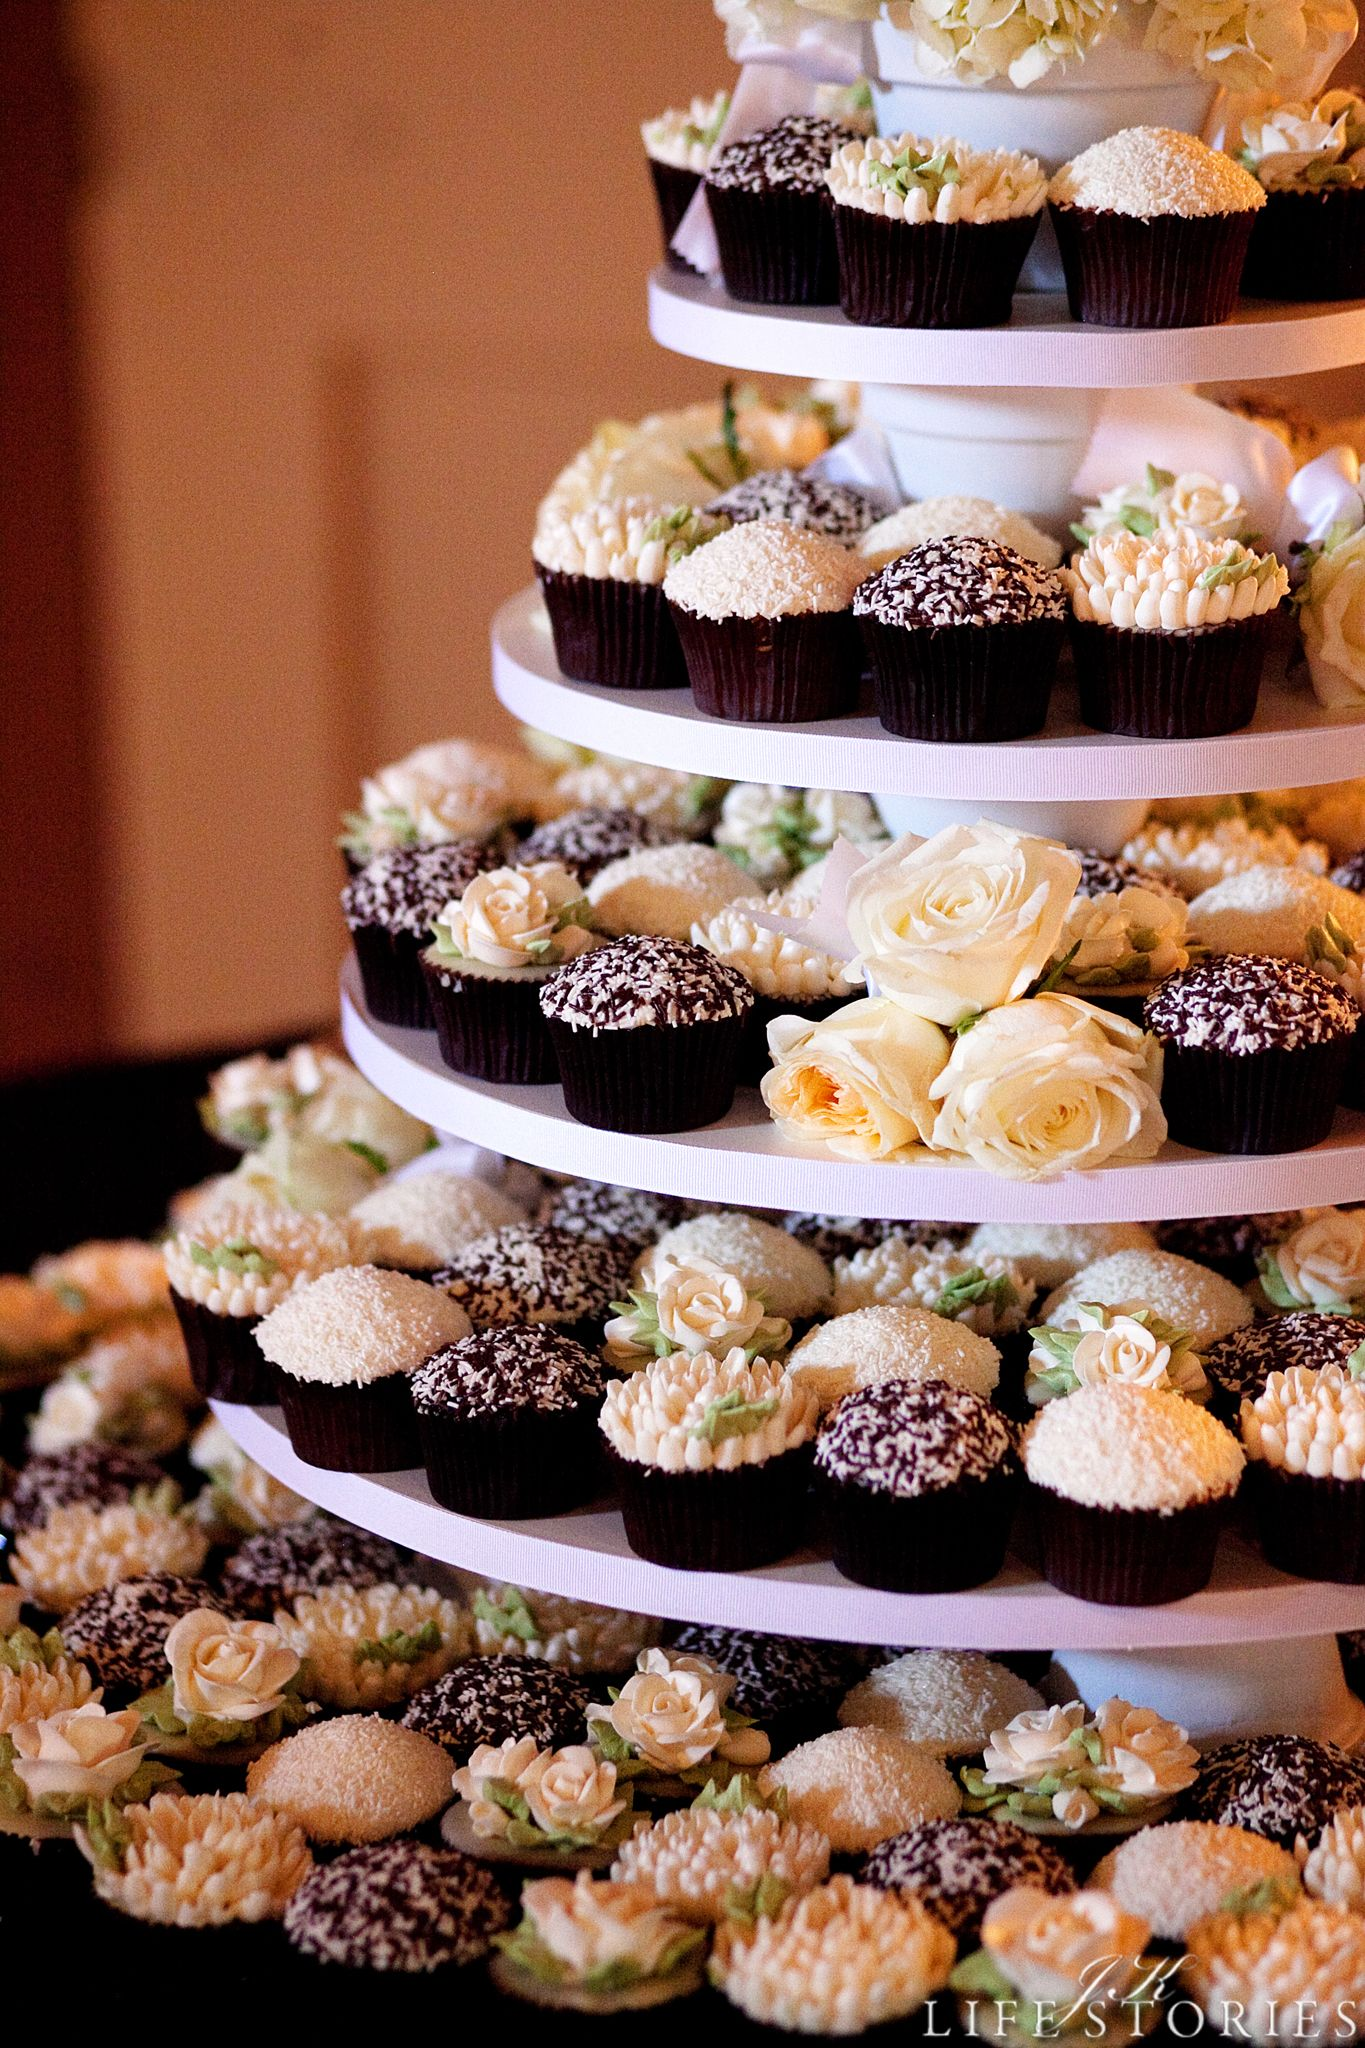 #NVCE cupcakes by Perfect Endings